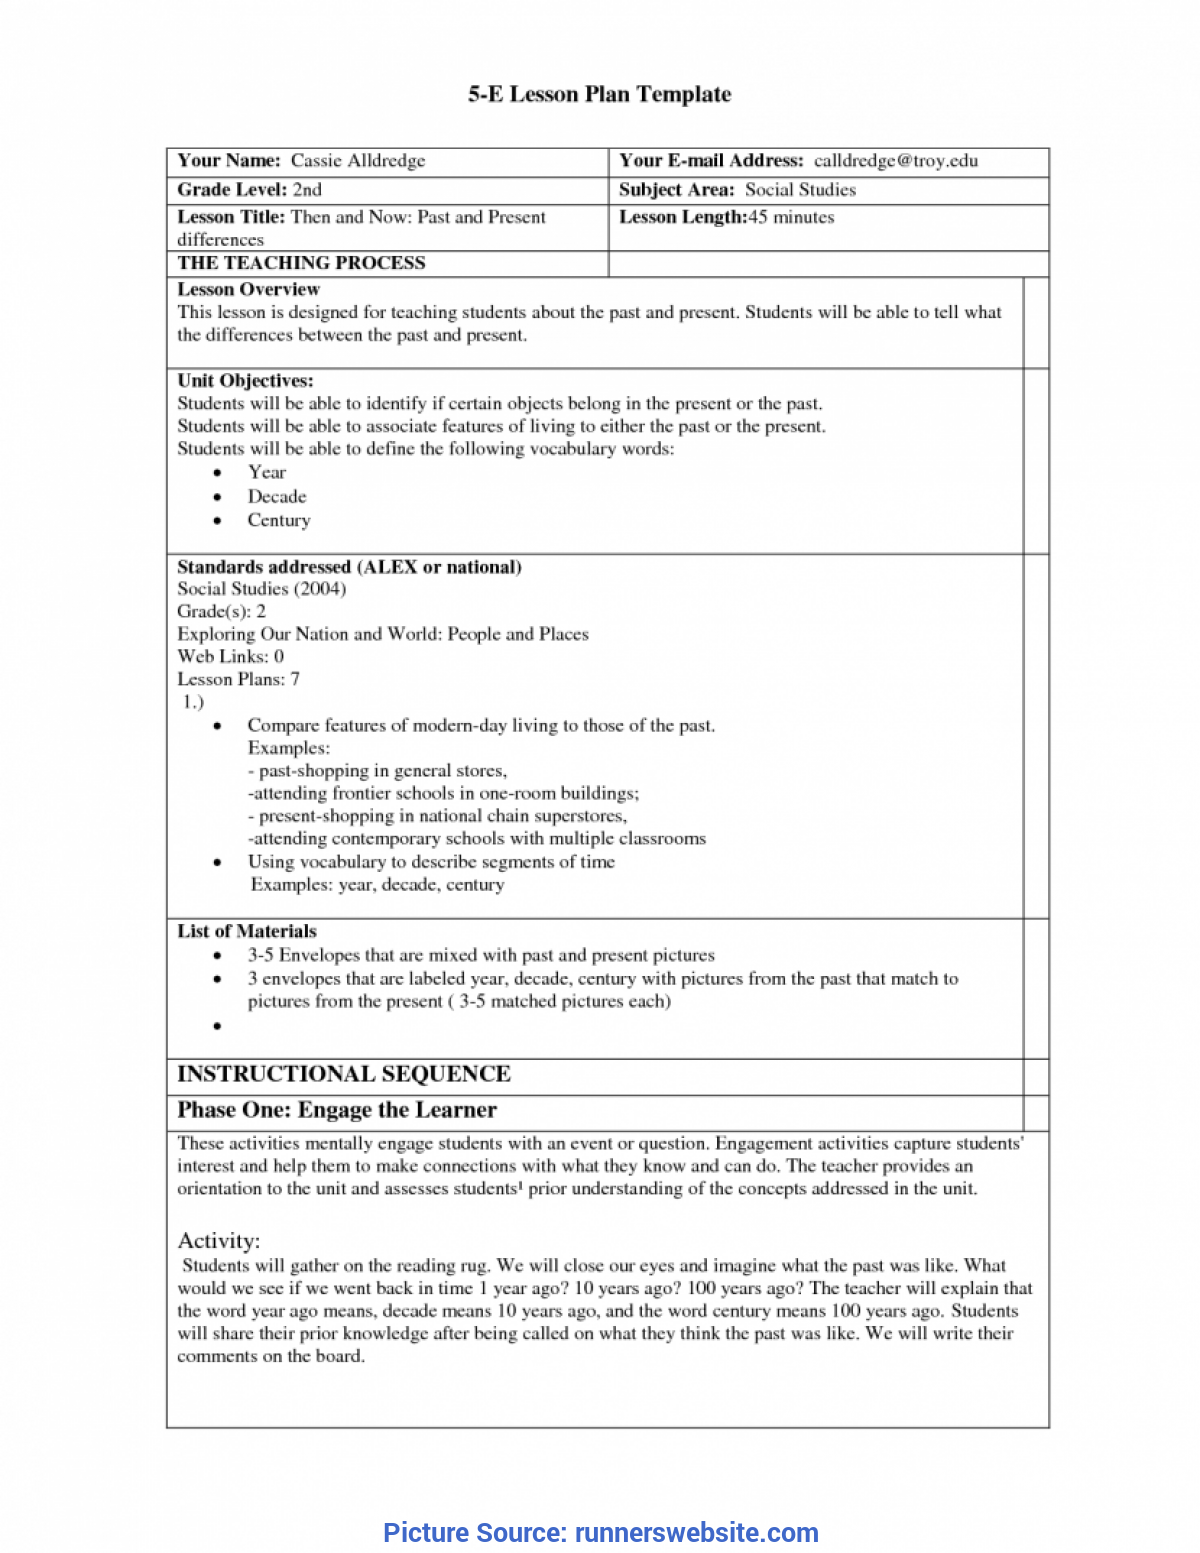 Best Model Lesson Plan For Science 5E Lesson Plan Template 7 Best